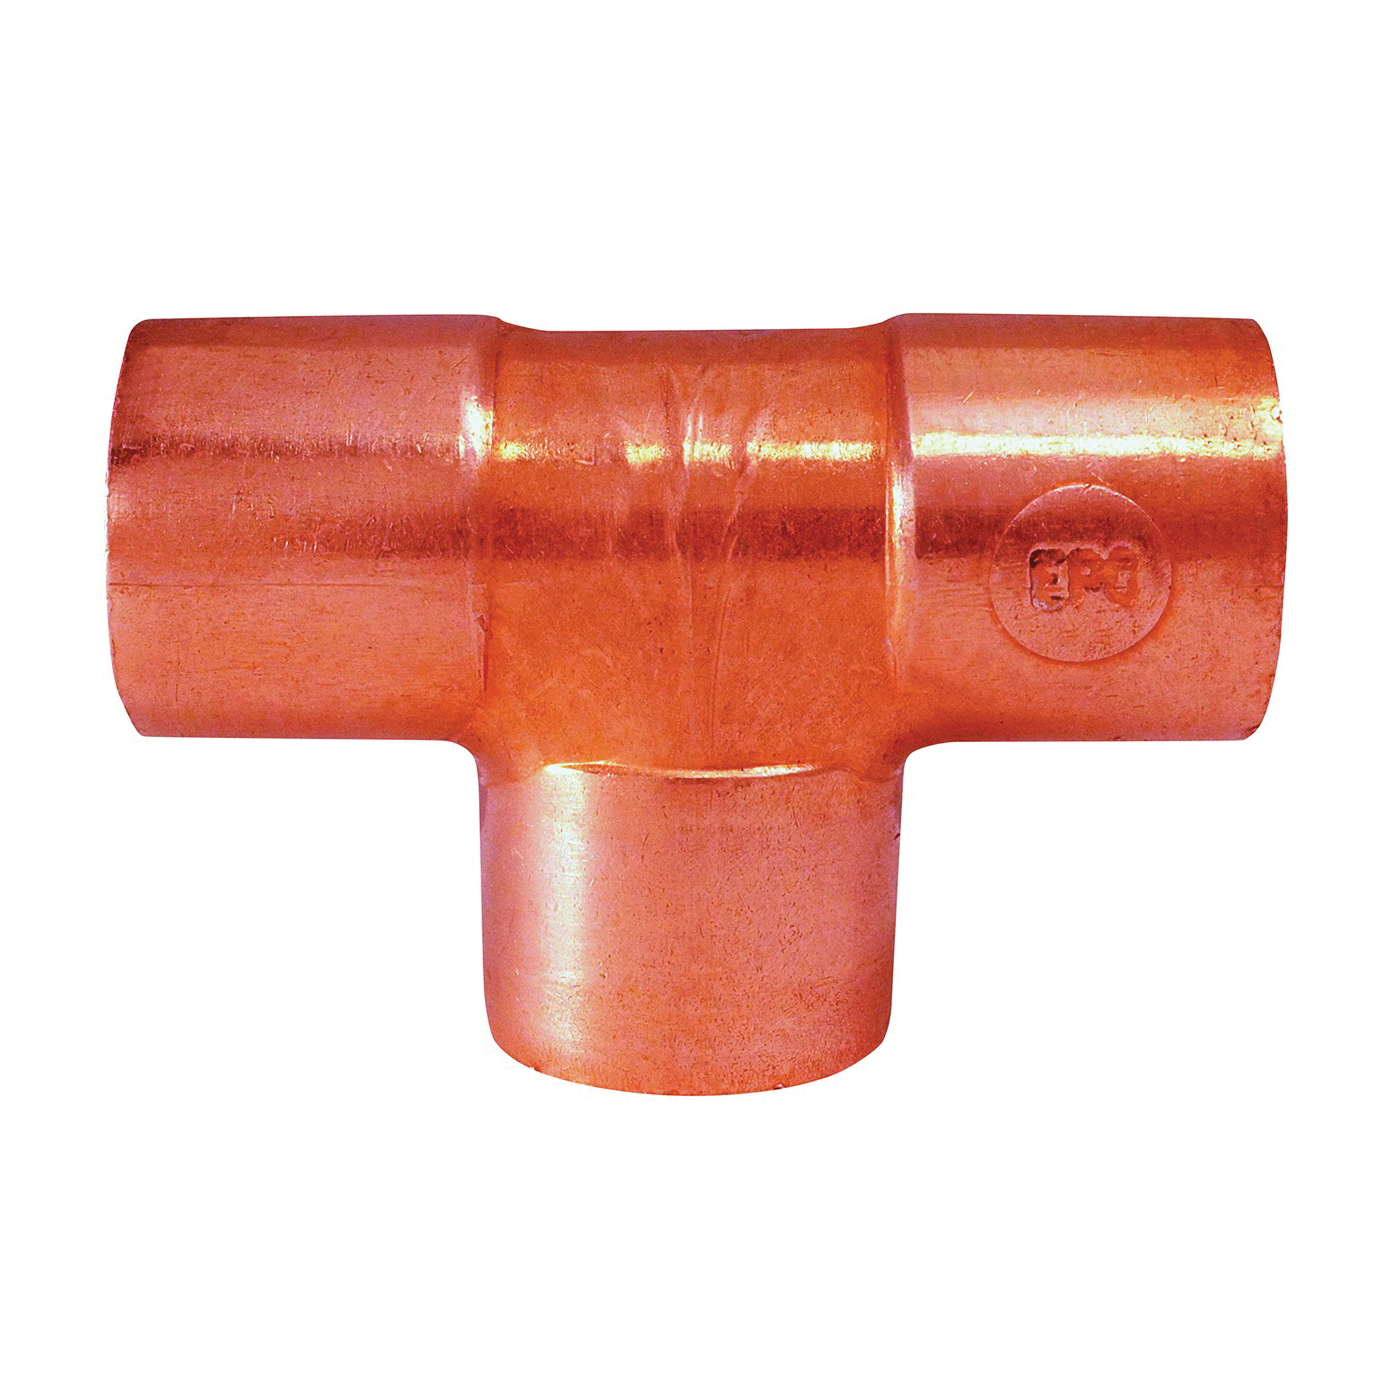 Picture of EPC 111 Series 32910 Pipe Tee, 1-1/2 in, Sweat, Copper